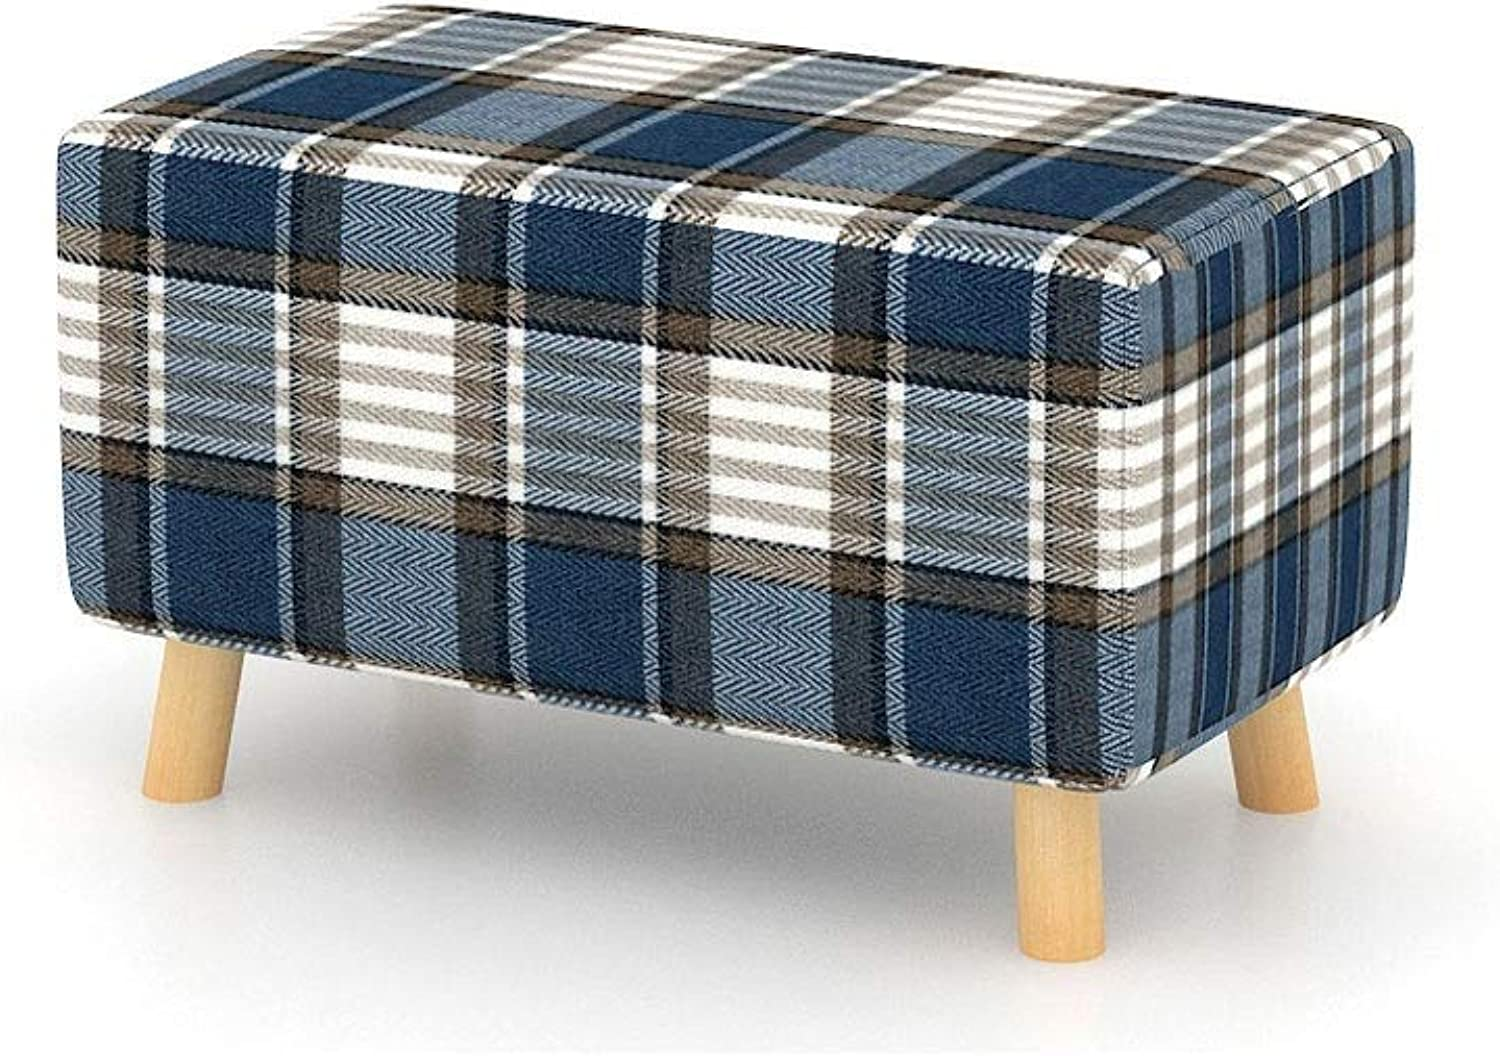 FS Solid Wood shoes Bench, Small Stool Solid Wood Living Room seat Bench Change shoes Stool Simple Creative Fabric Sofa Bench 56×32×28cm (color   Square)